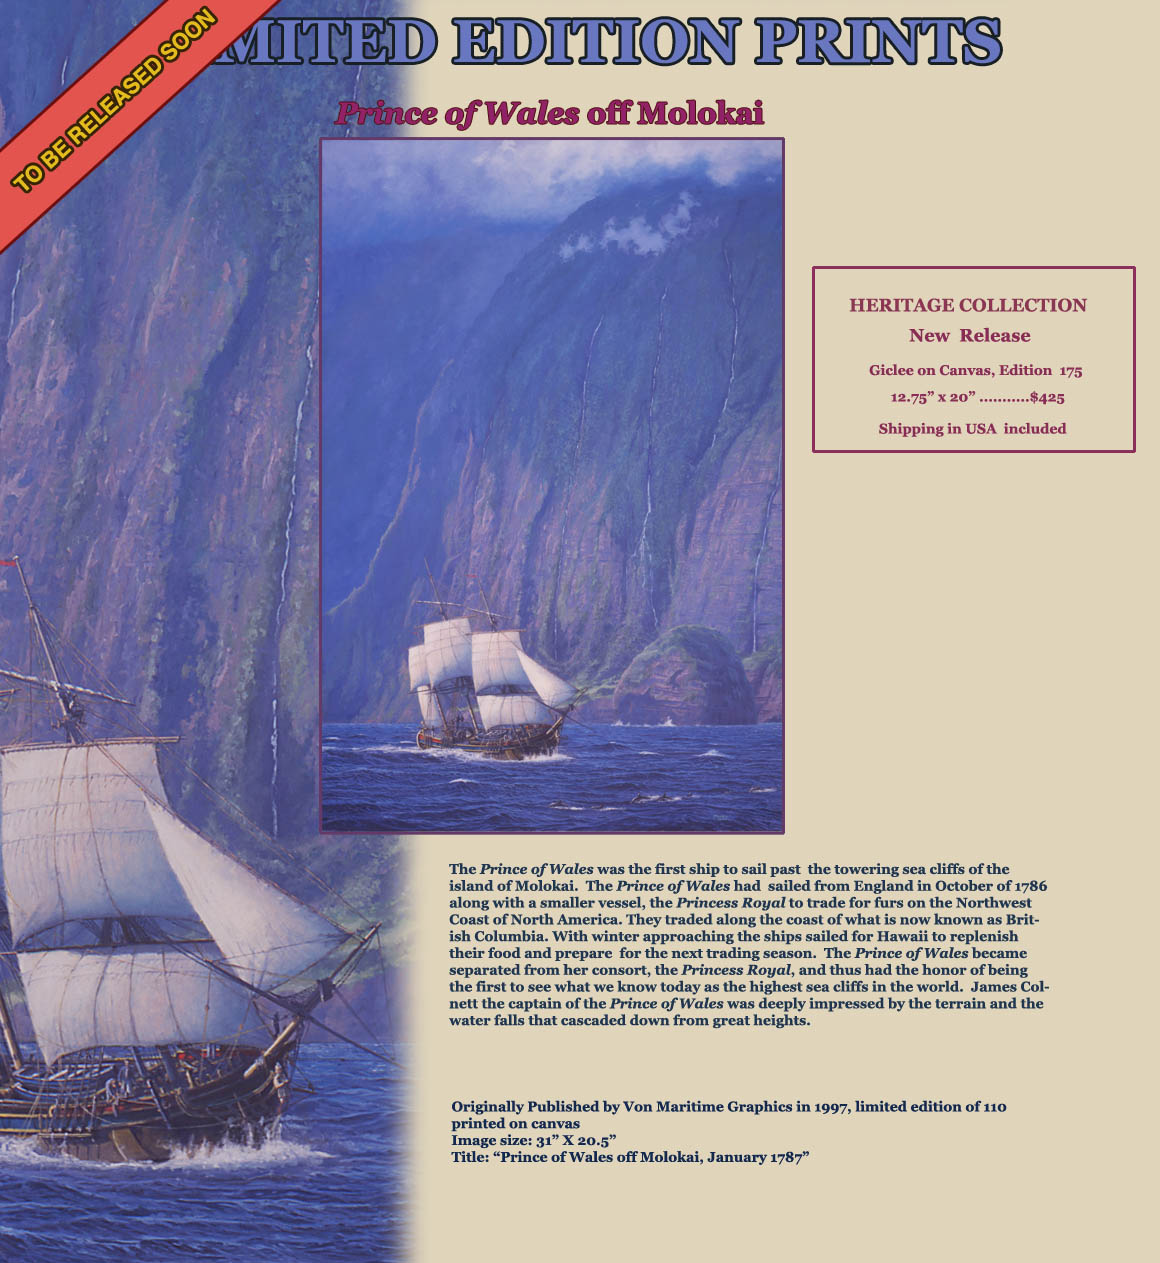 Ship Prince of Wales explores the lofty sea cliff coast of Molokai in 1787